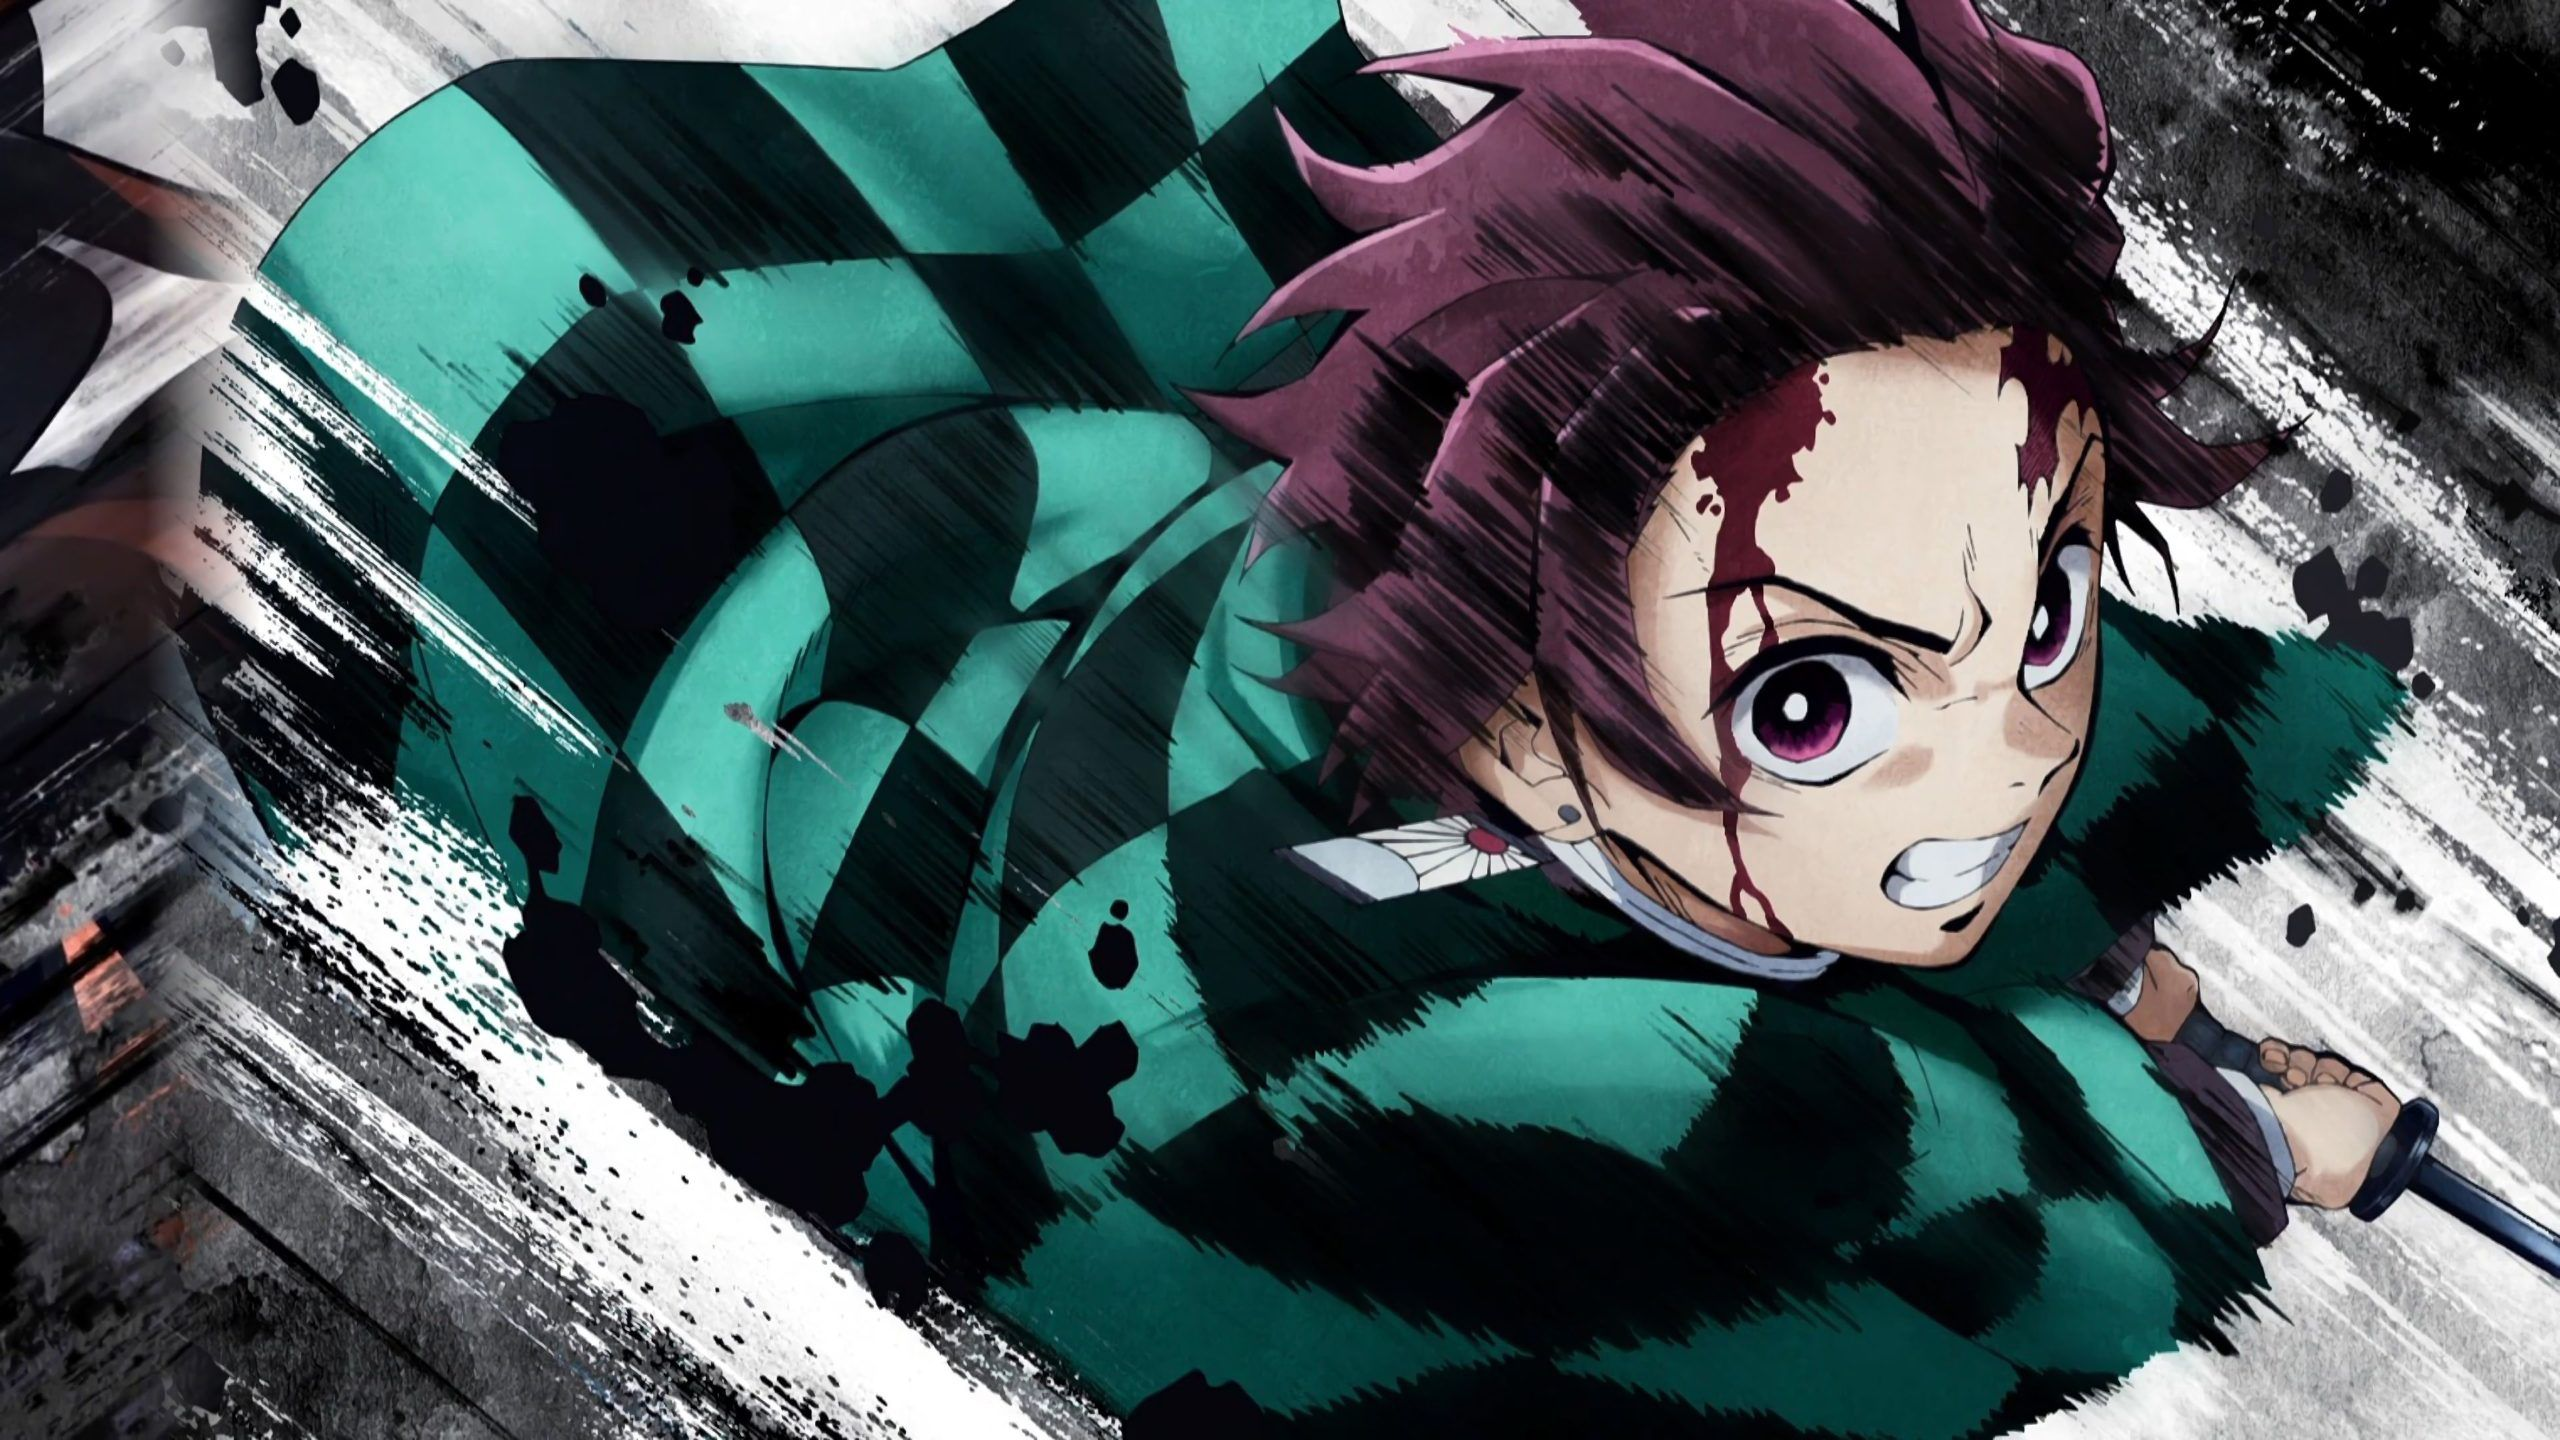 Kimetsu No Yaiba Wallpaper Hd Pc Tanjirou Kamado Kimetsu